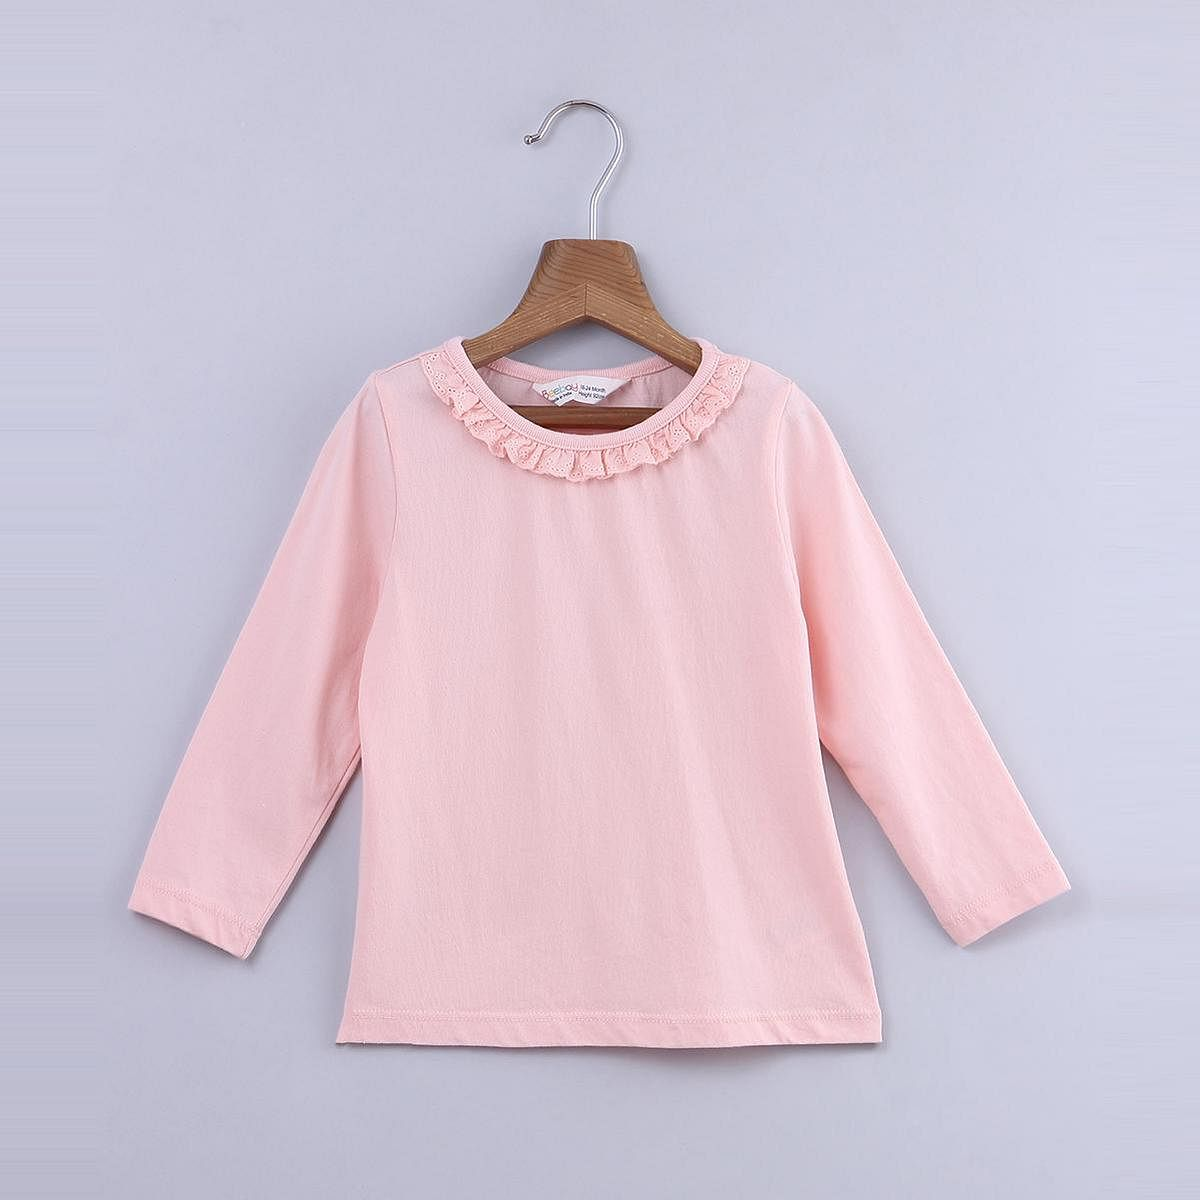 Beebay - Peach Colored Lace Frill Neck Cotton Top For Kids Girls